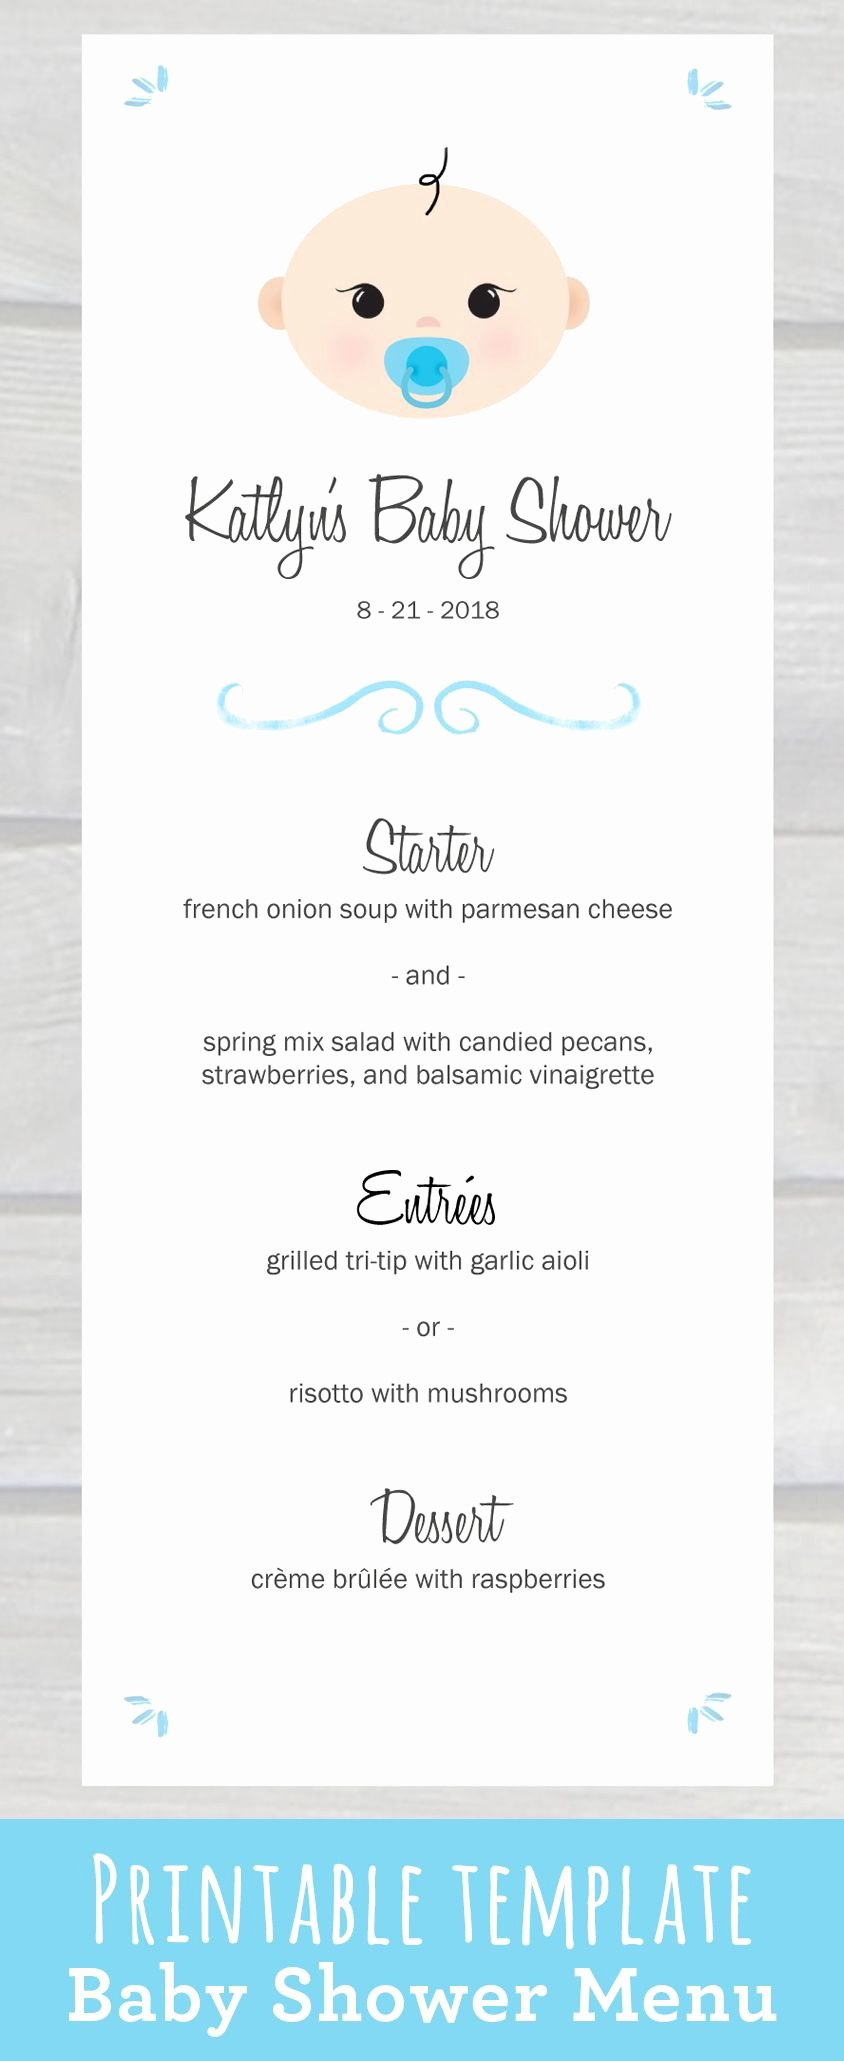 Baby Shower Menu Template Beautiful Use This Cute Baby Shower Menu Template Pdf to Edit